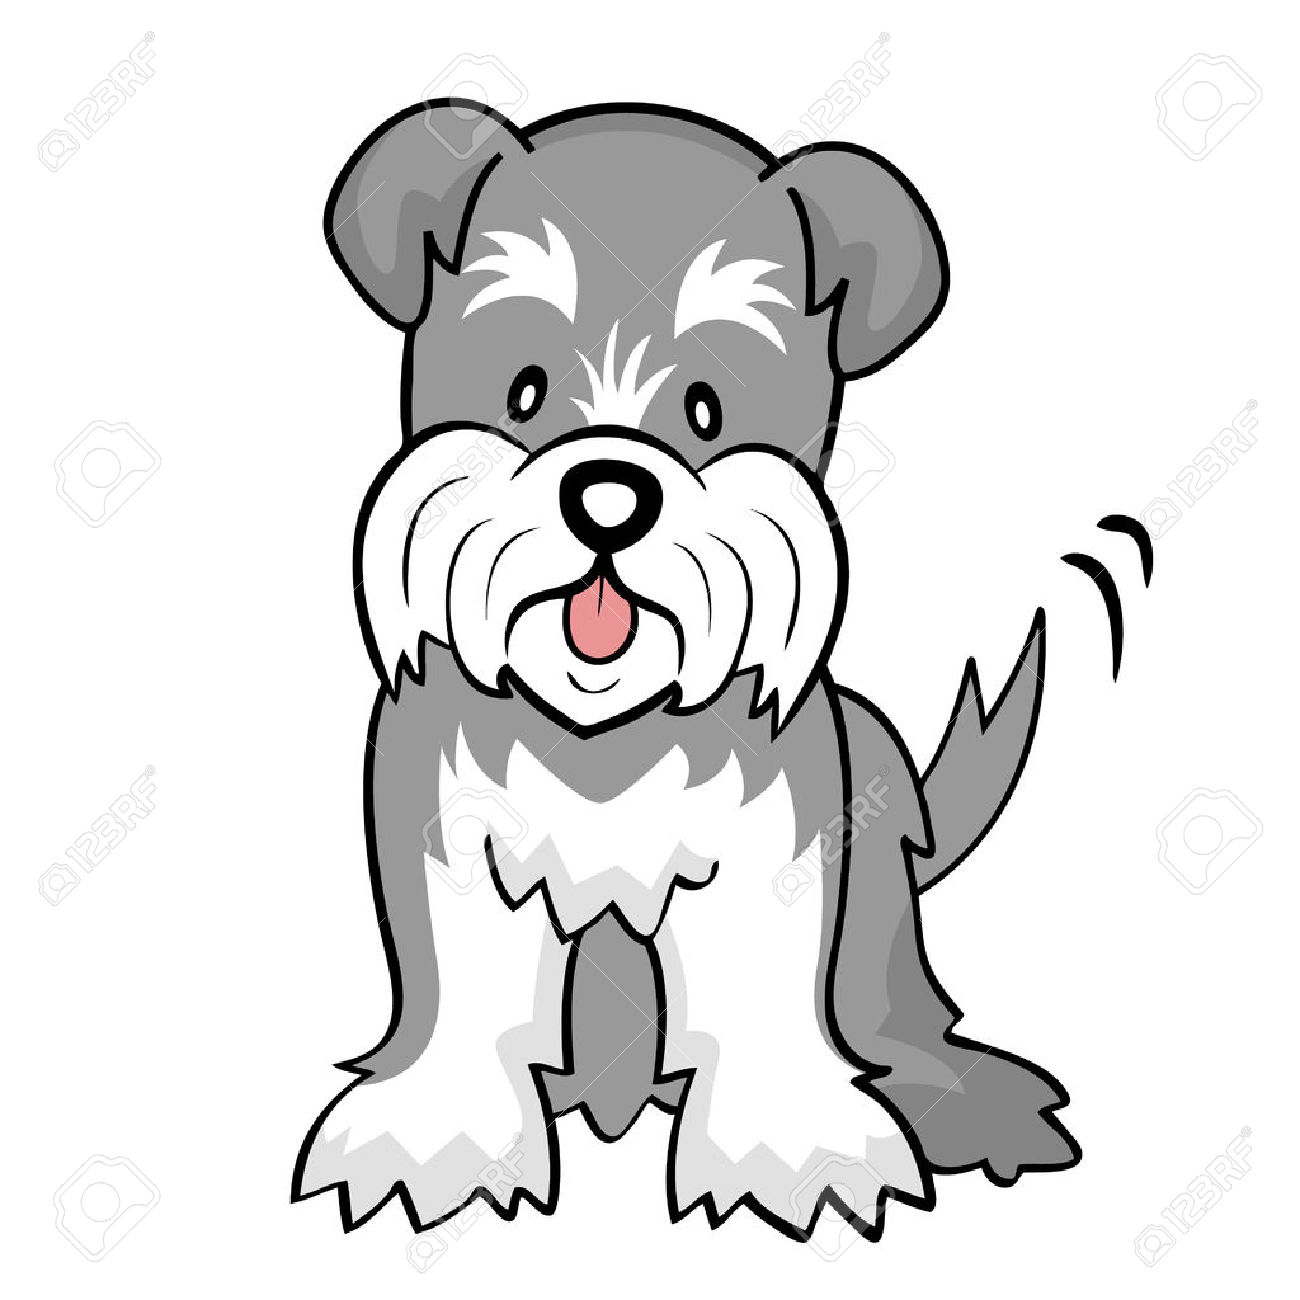 Schnauzer clipart #10, Download drawings